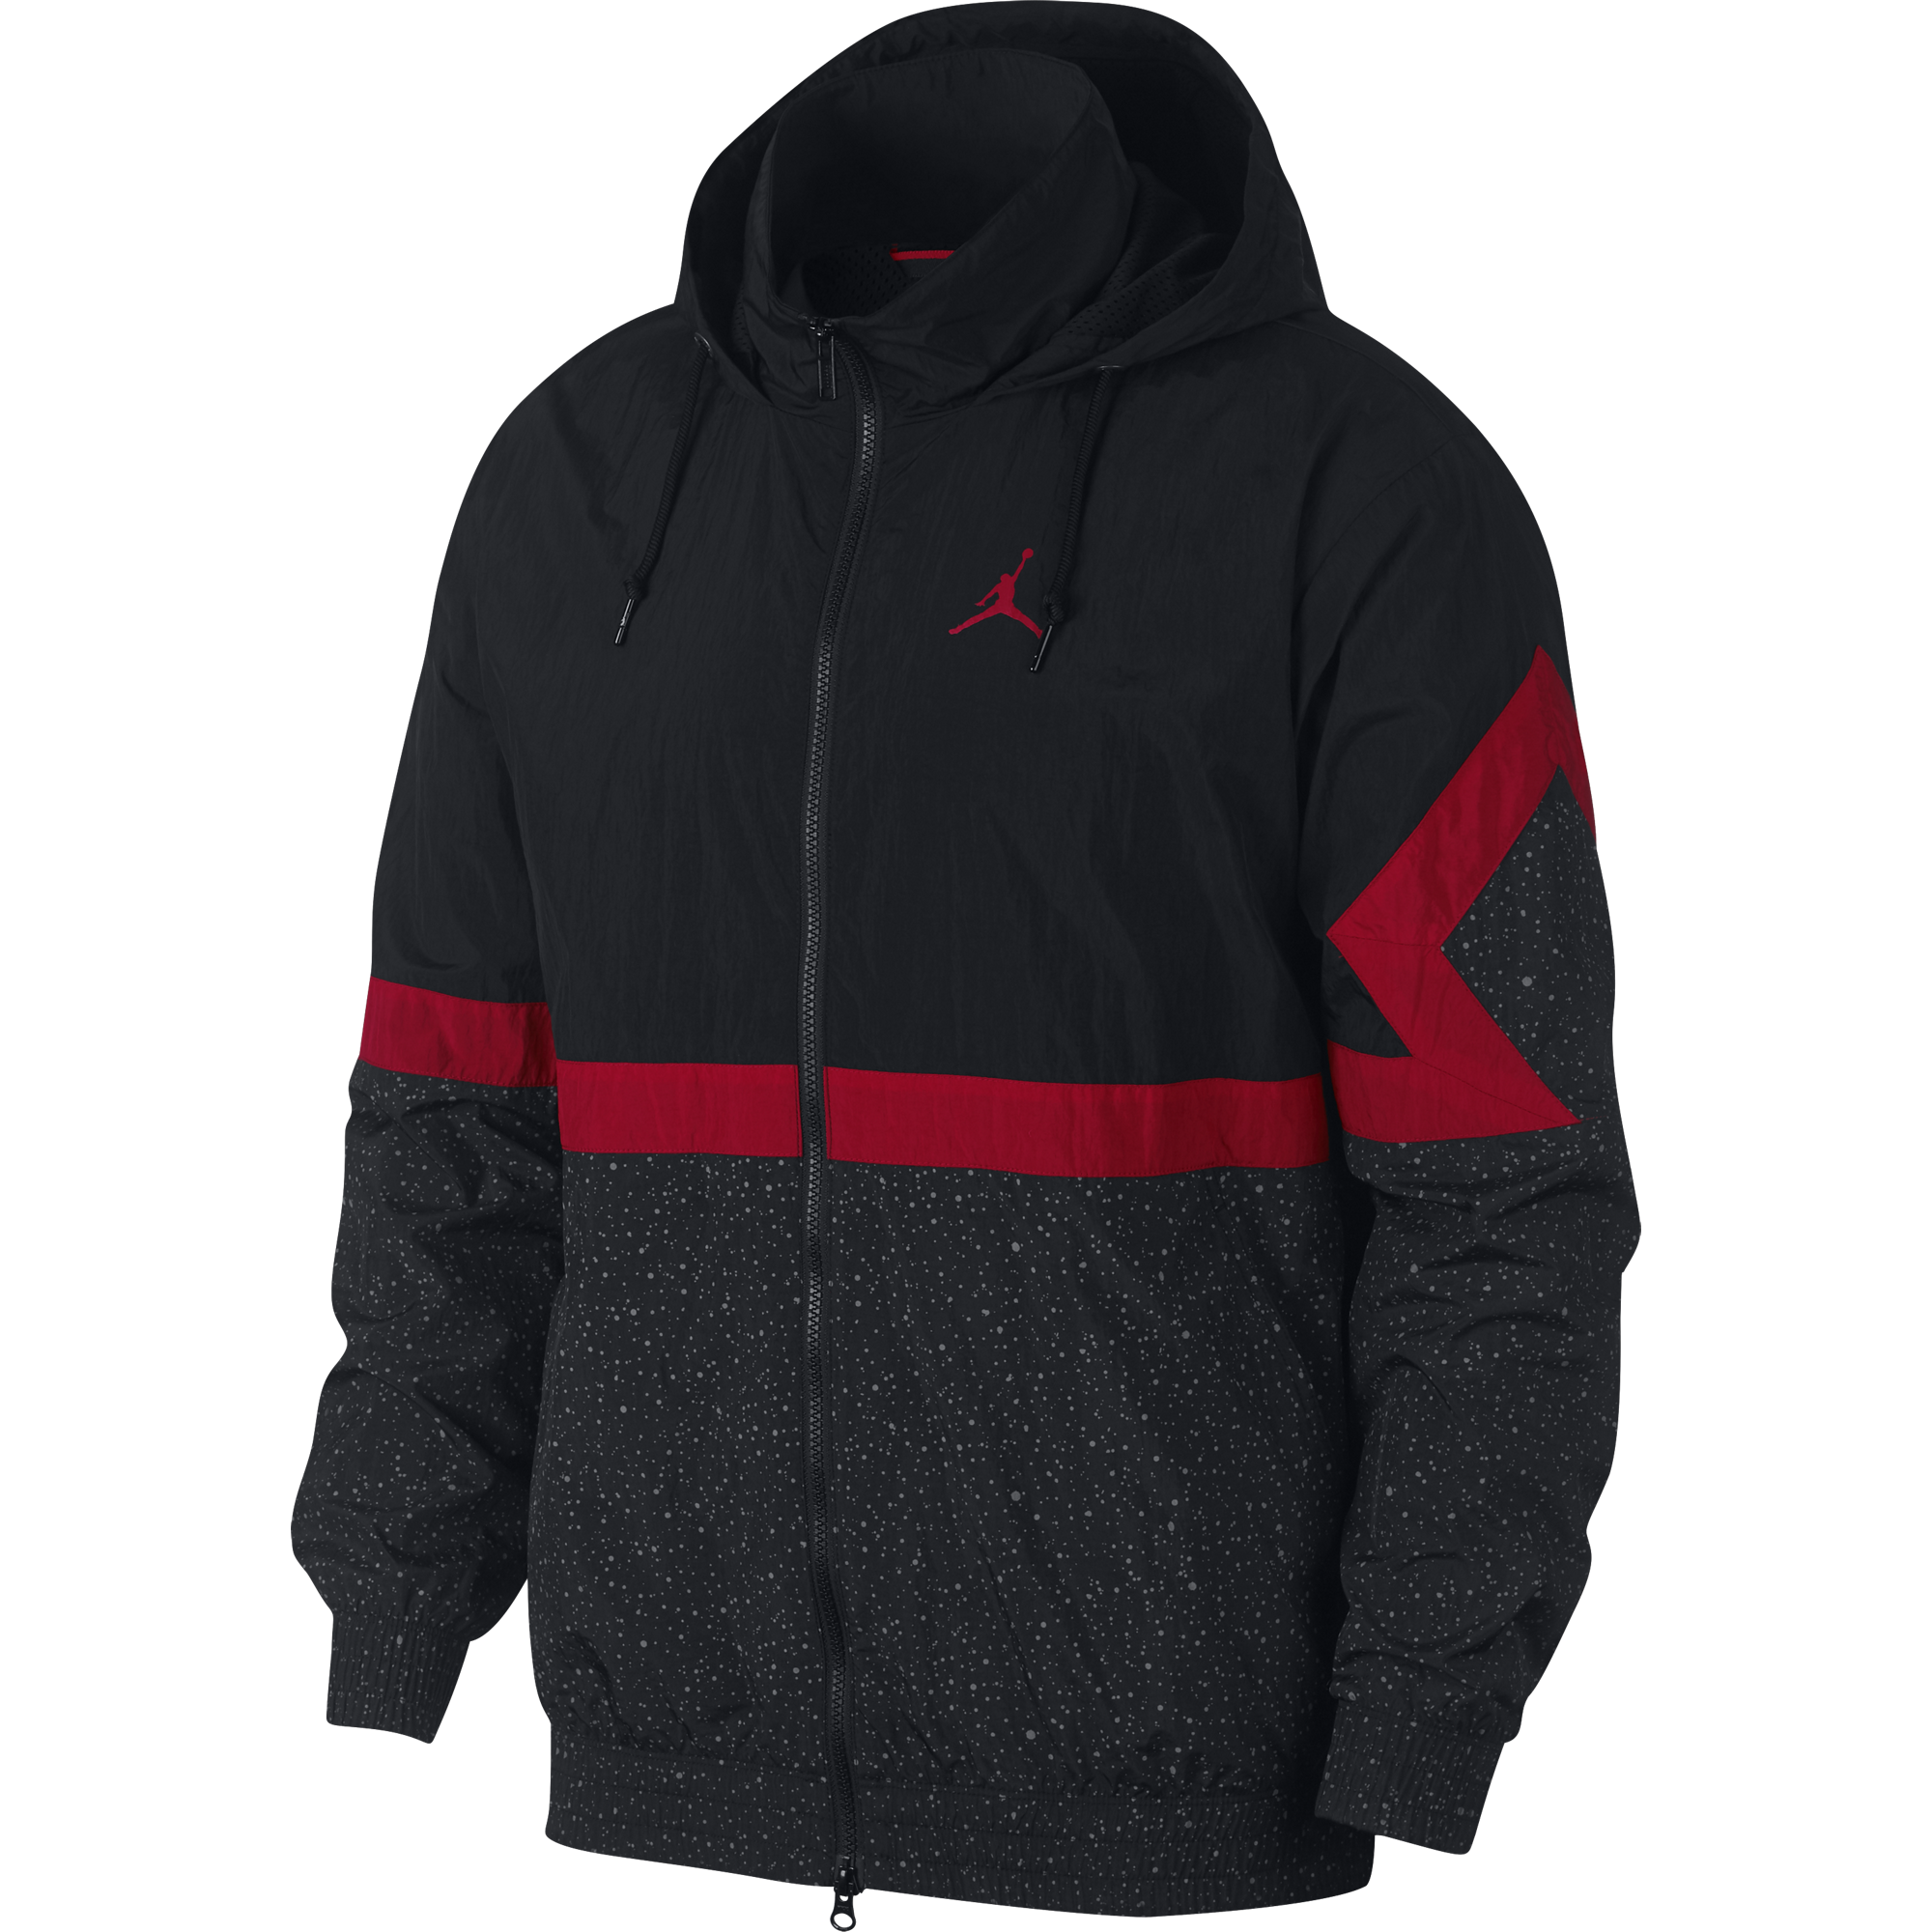 AIR JORDAN DIAMOND CEMENT JACKET